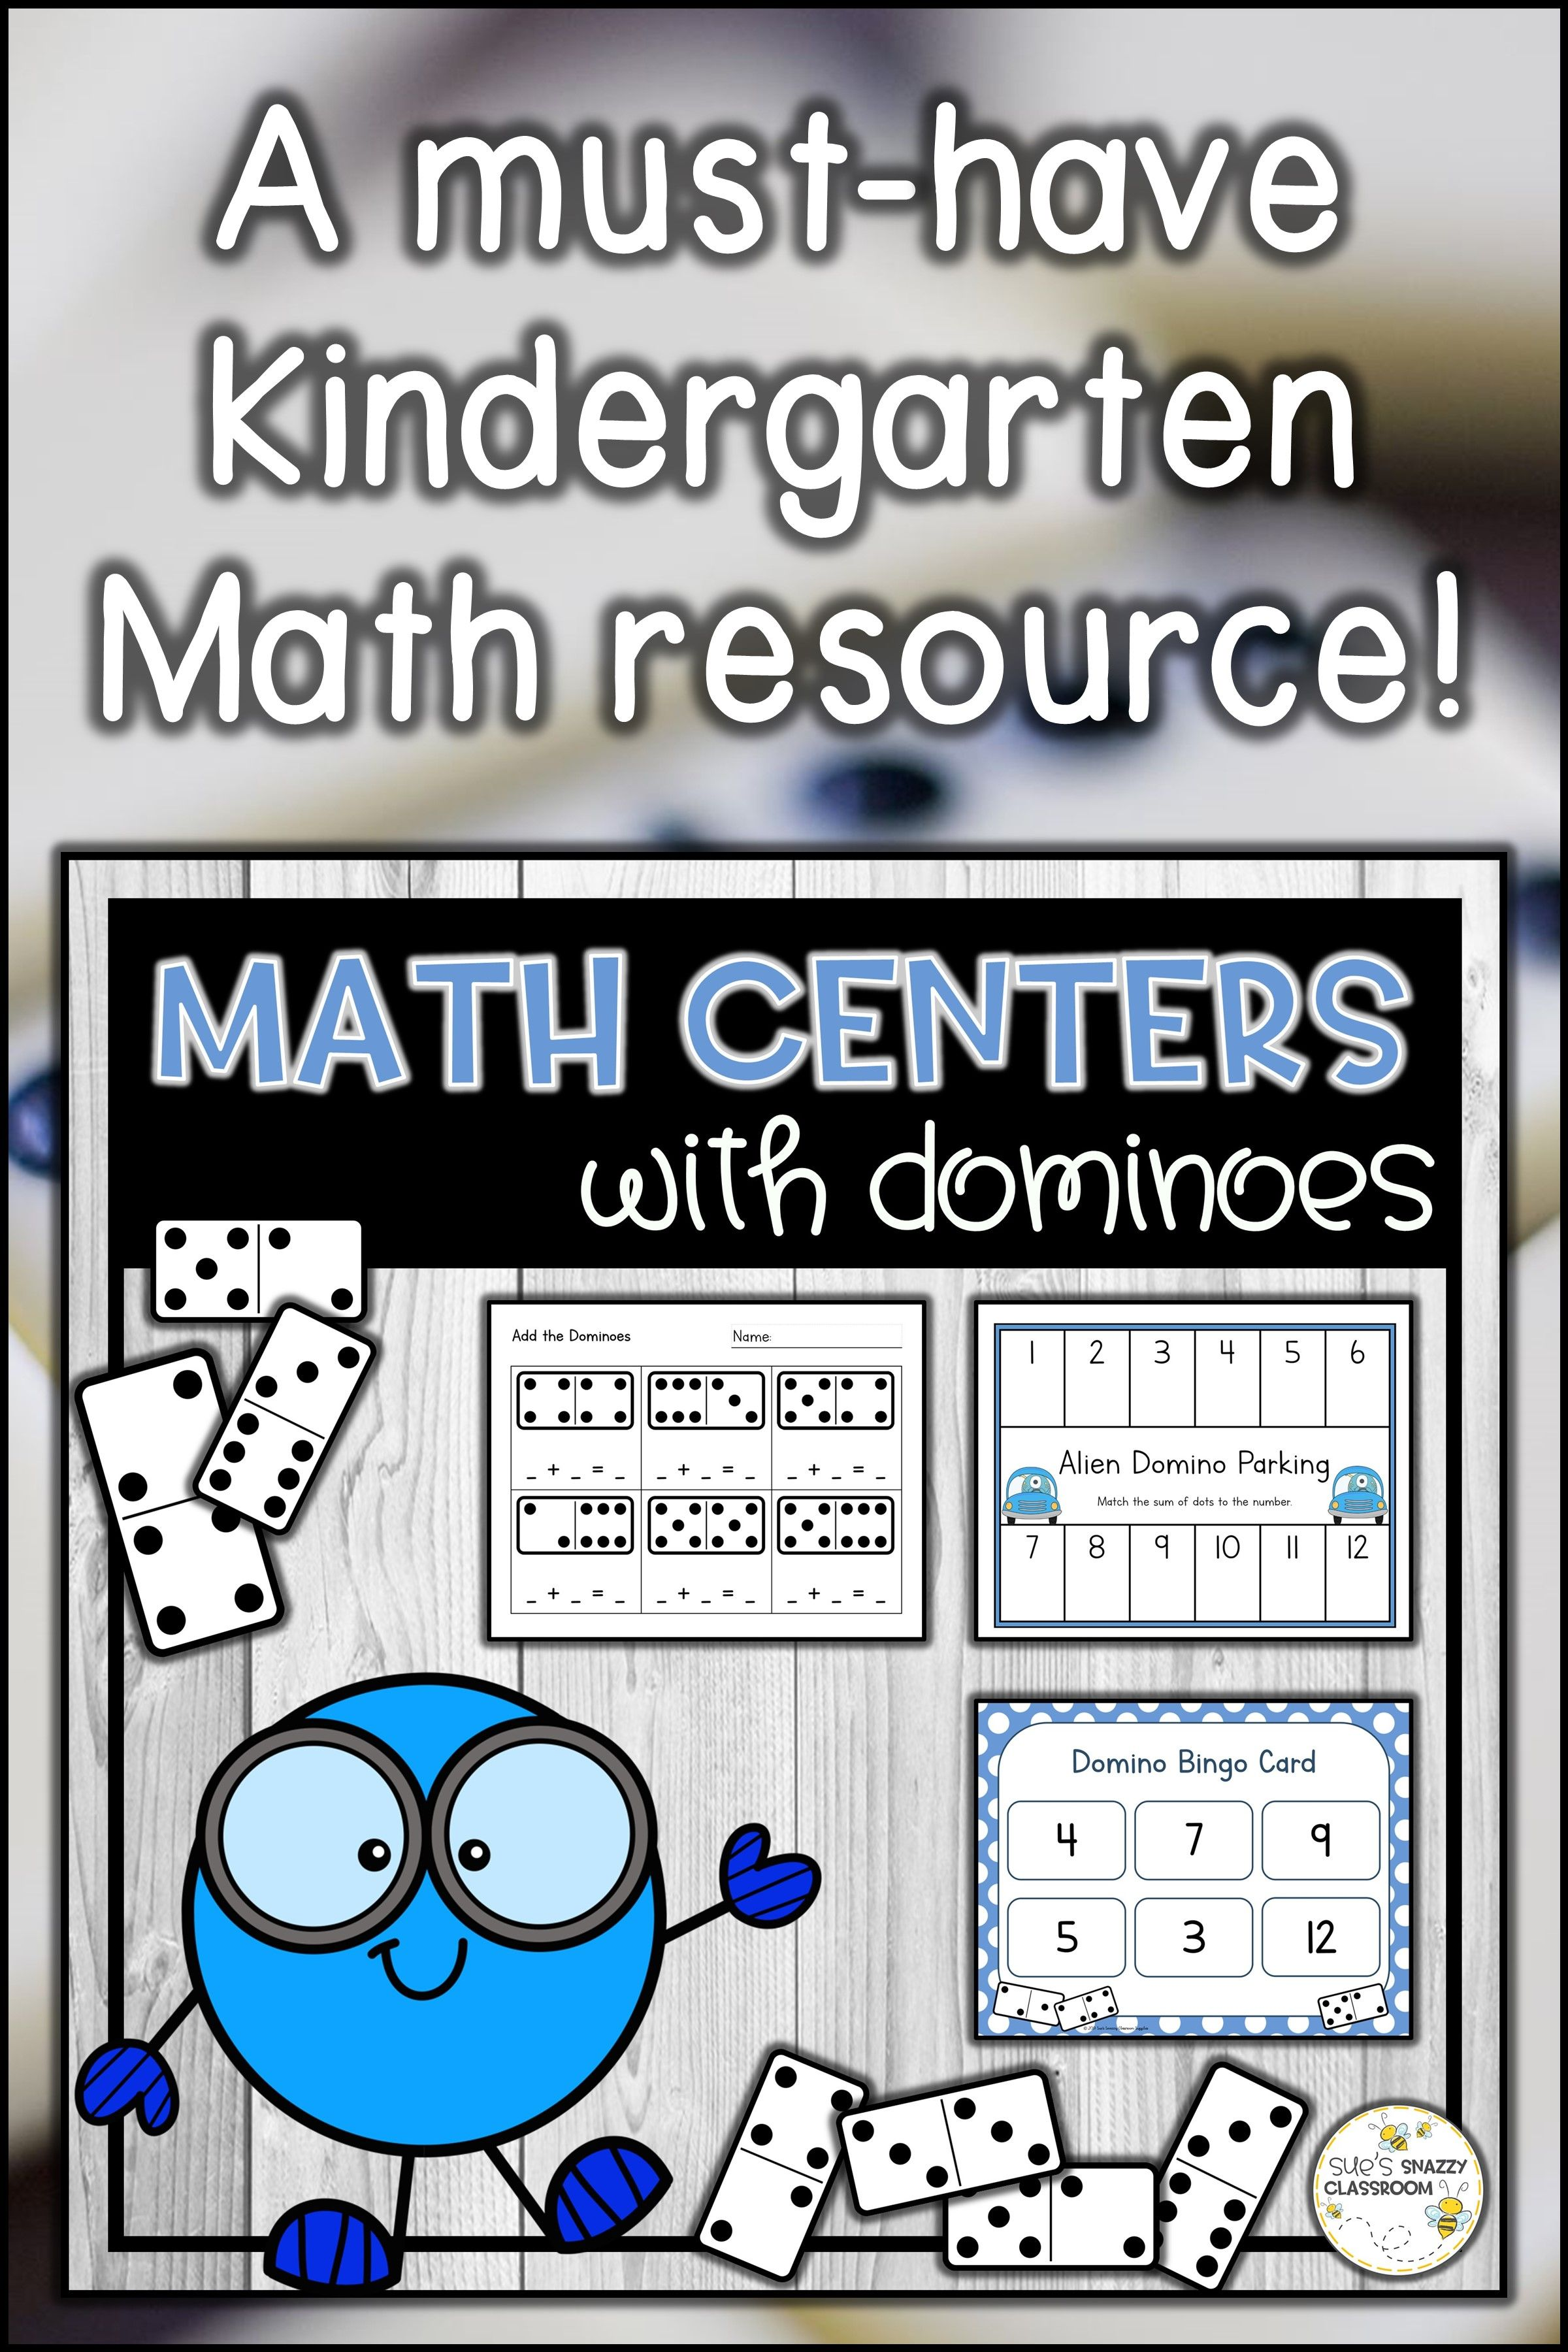 Math Centers Activities And Games With Dominoes Summer Math Activities Math Centers Math Center Activities [ 3600 x 2400 Pixel ]